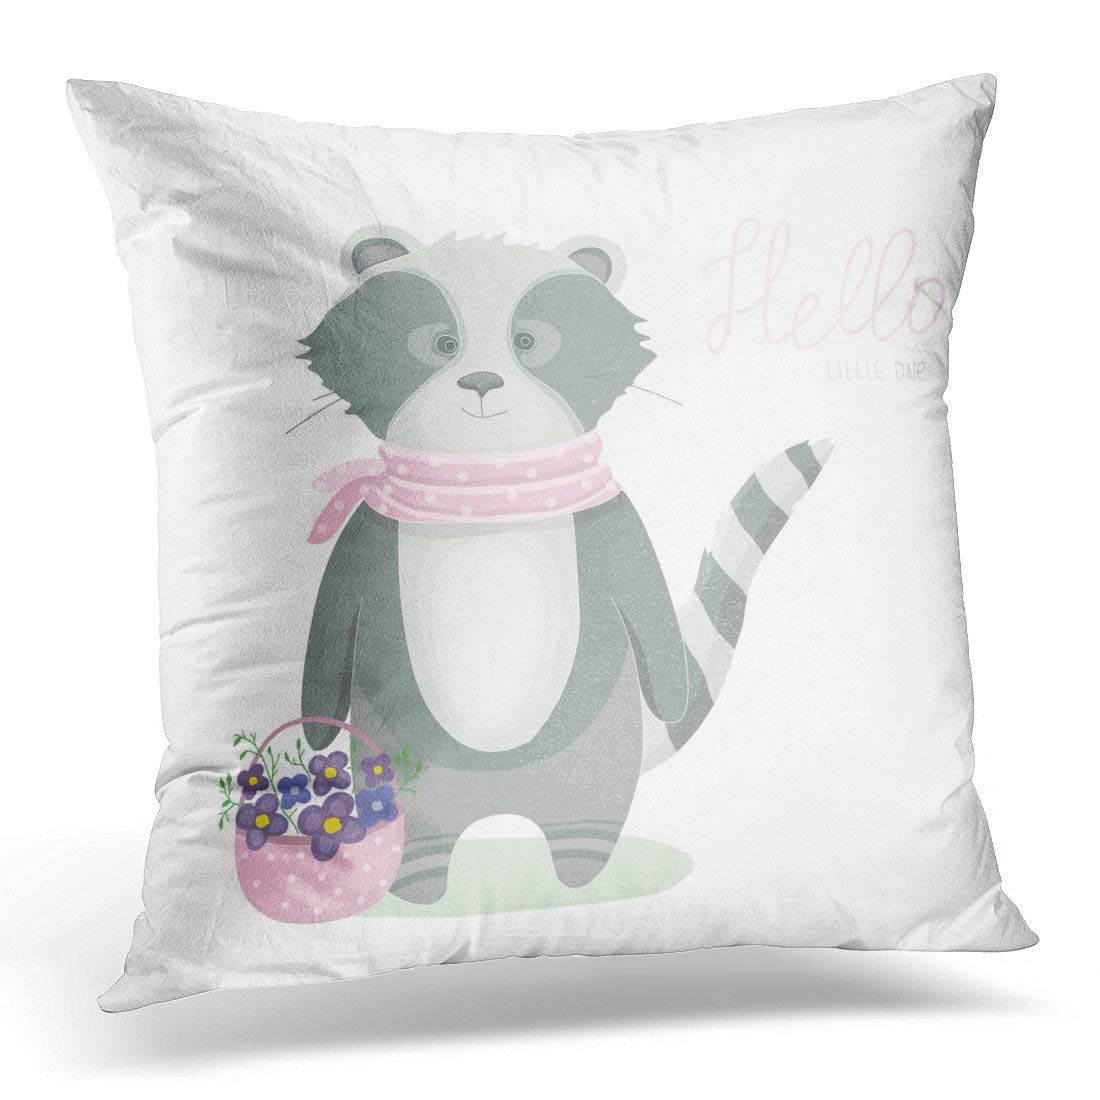 ARHOME Colorful Animal Cartoon Raccoon in Pink Dotted Scarf Basket with Flowers Kids Gray Hello Pillow Case Pillow Cover 18x18 inch